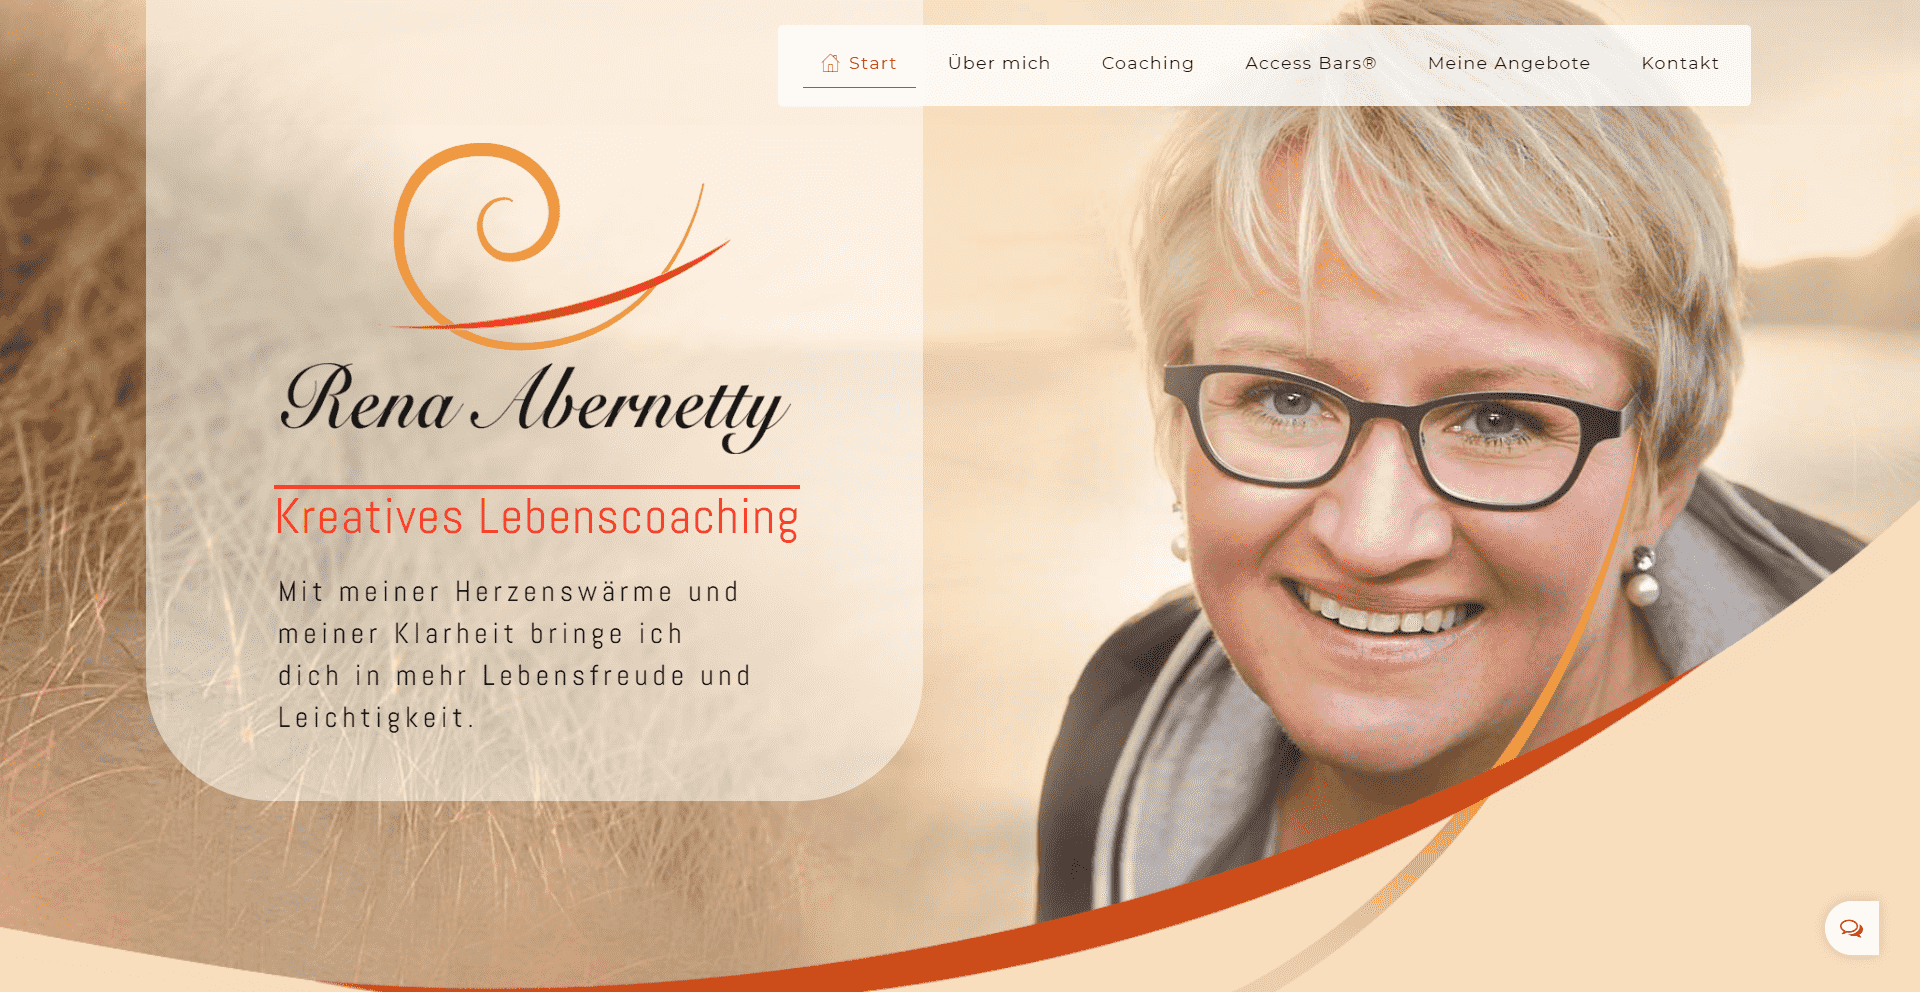 Rena Abernetty - Life Coach, Münster | WordPress Webdesign Referenz